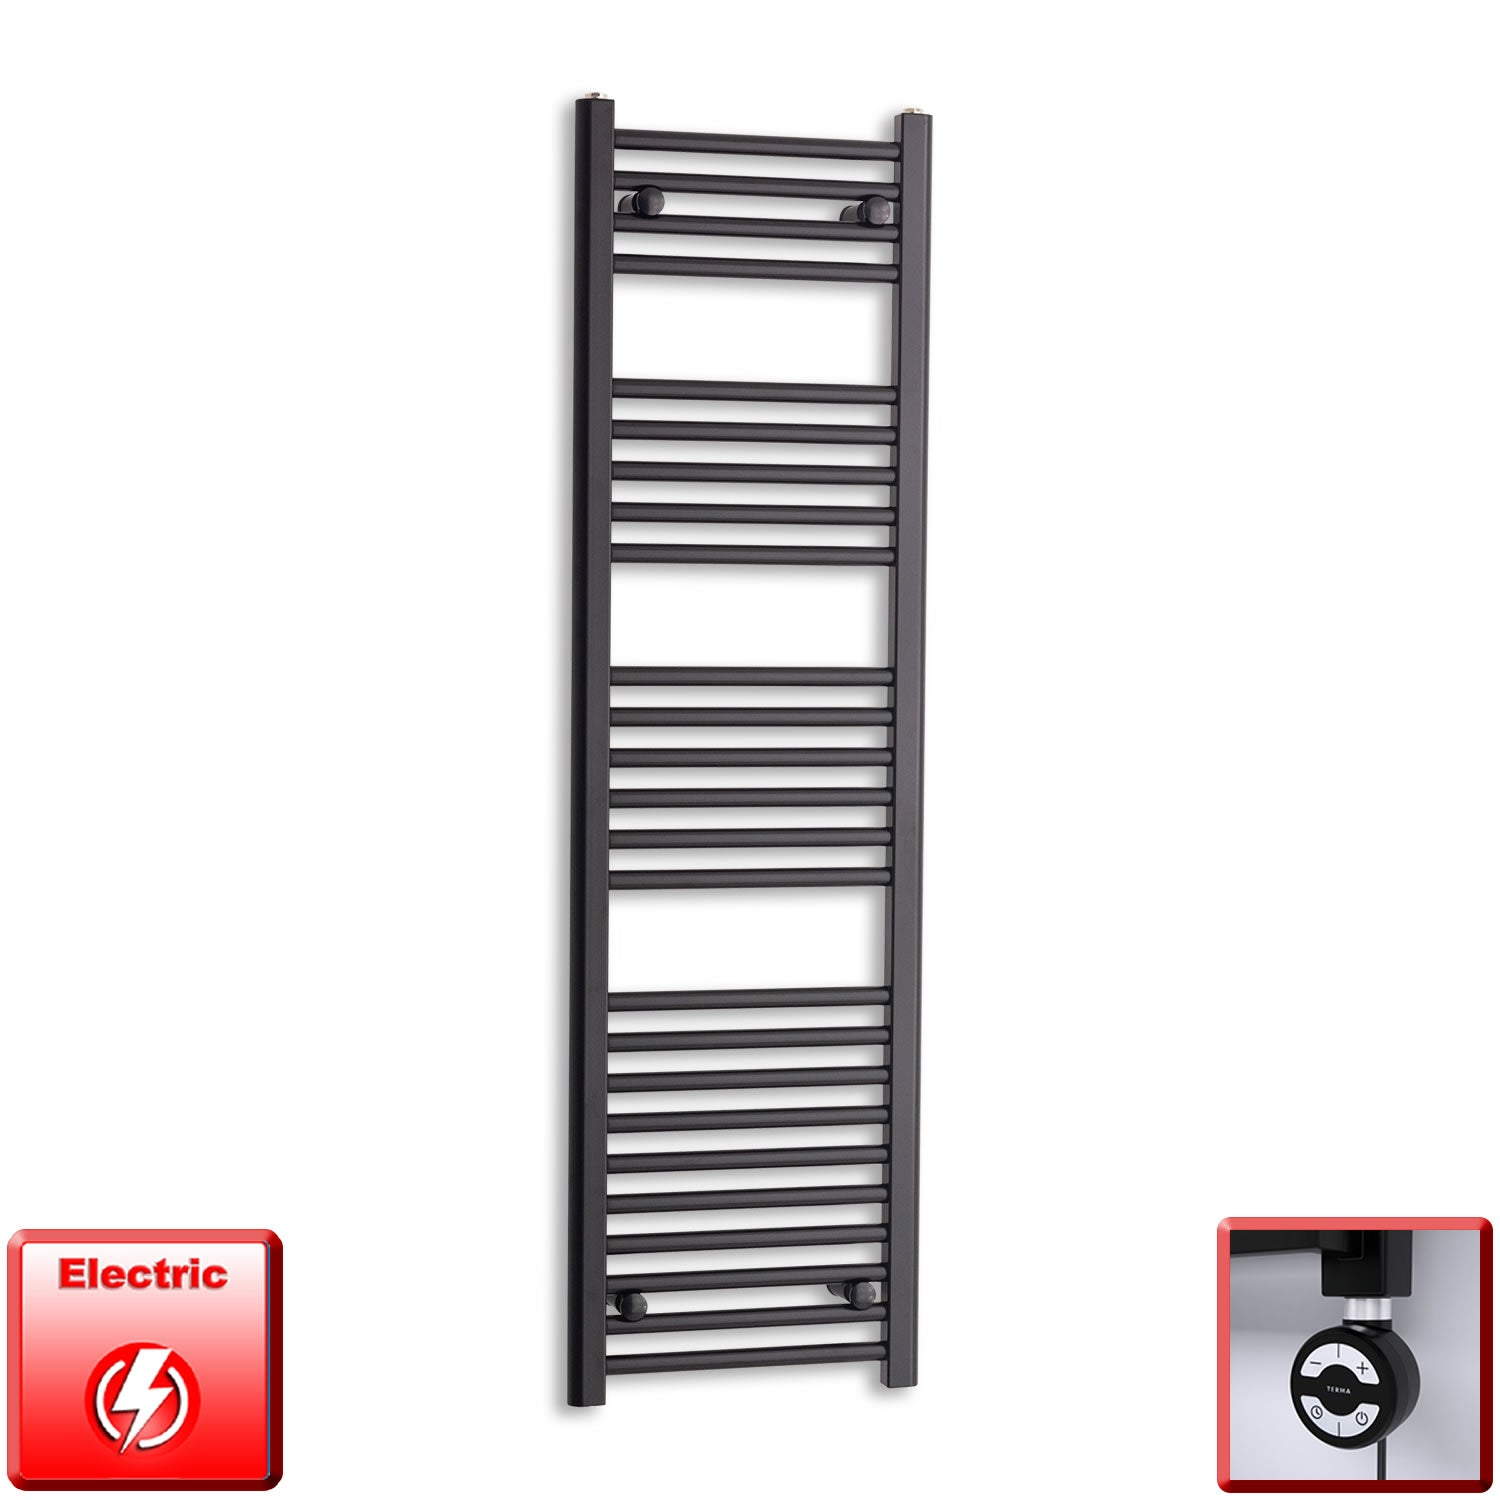 400mm Wide 1400mm High Pre-Filled Black Electric Towel Rail Radiator With Thermostatic MOA Element